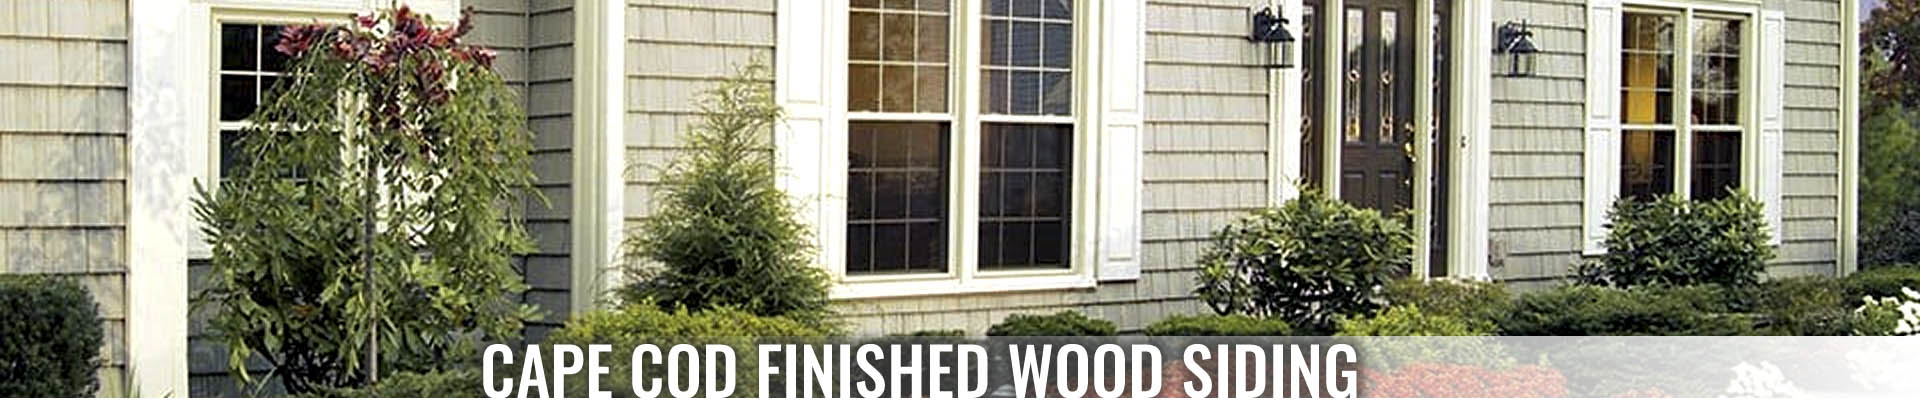 Cape Cod Finished Wood Siding - Designer Shingles, Types of Siding Products at Turkstra Lumber. Visit our Designer Showcase today!